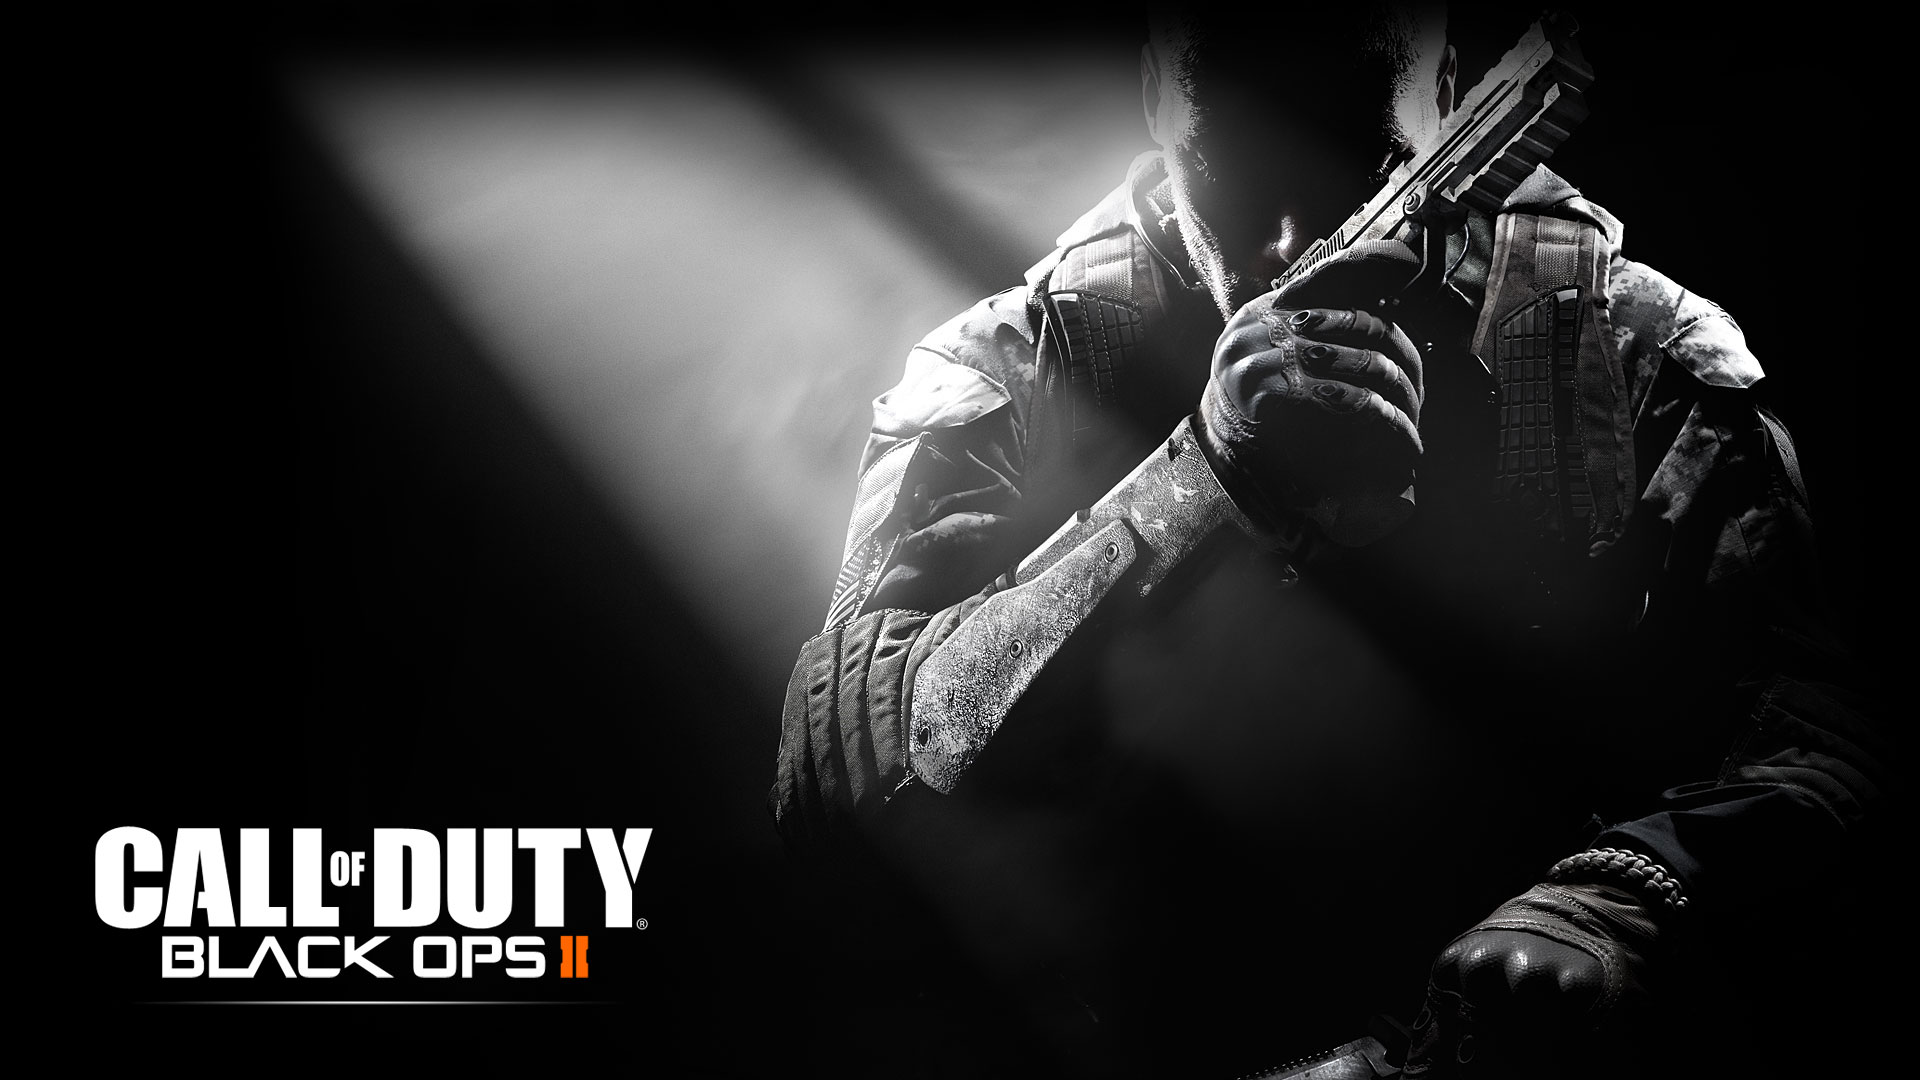 Black Ops 2 Wallpapers in HD Page 3 1920x1080